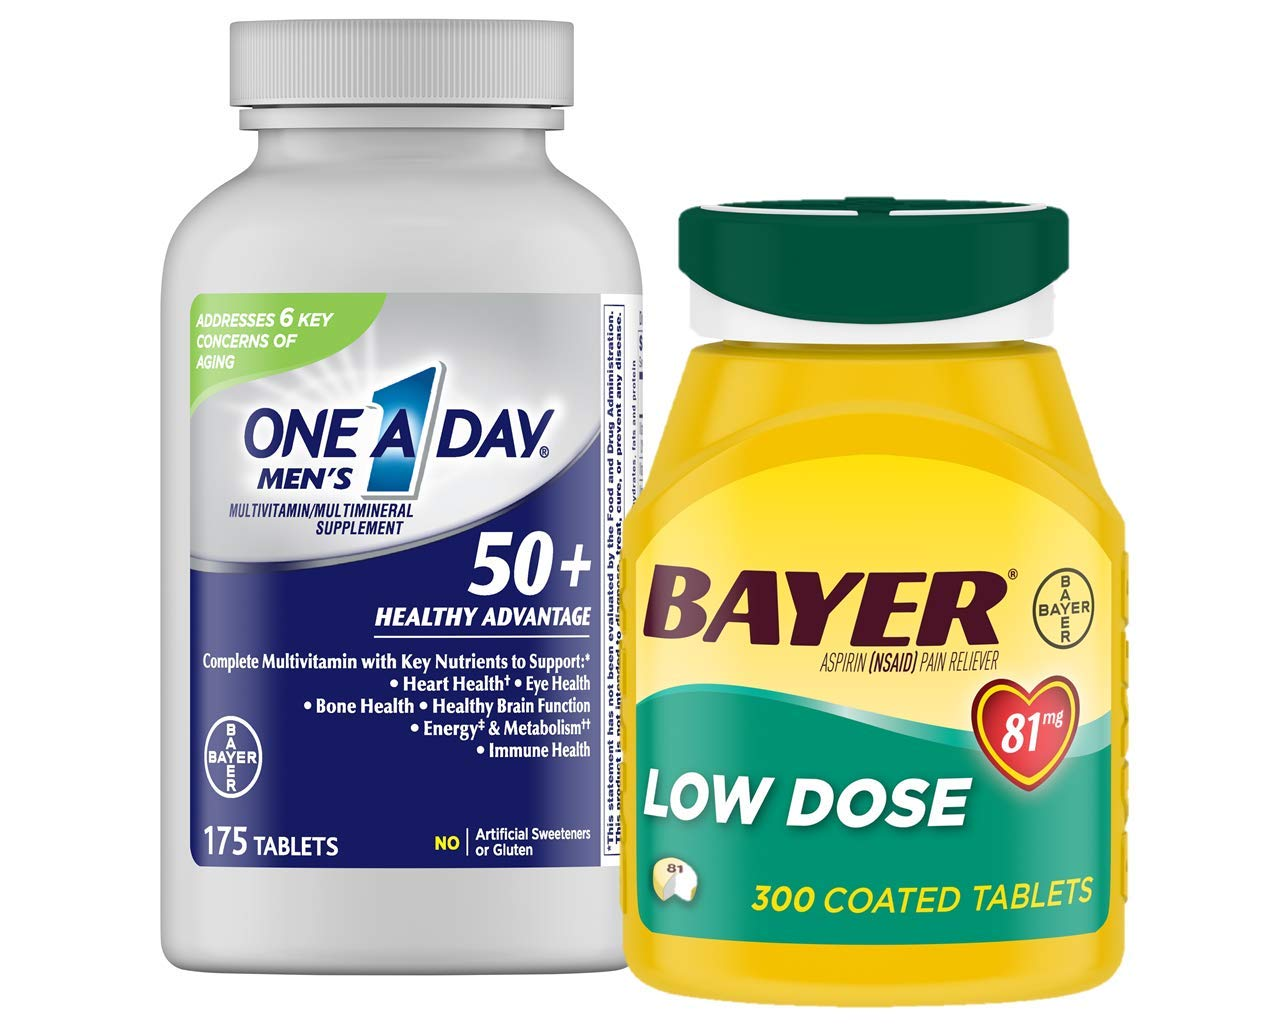 Bayer Aspirin 300 Count & One A Day Men's 50+ 175 Count Bundle Pack by Bayer